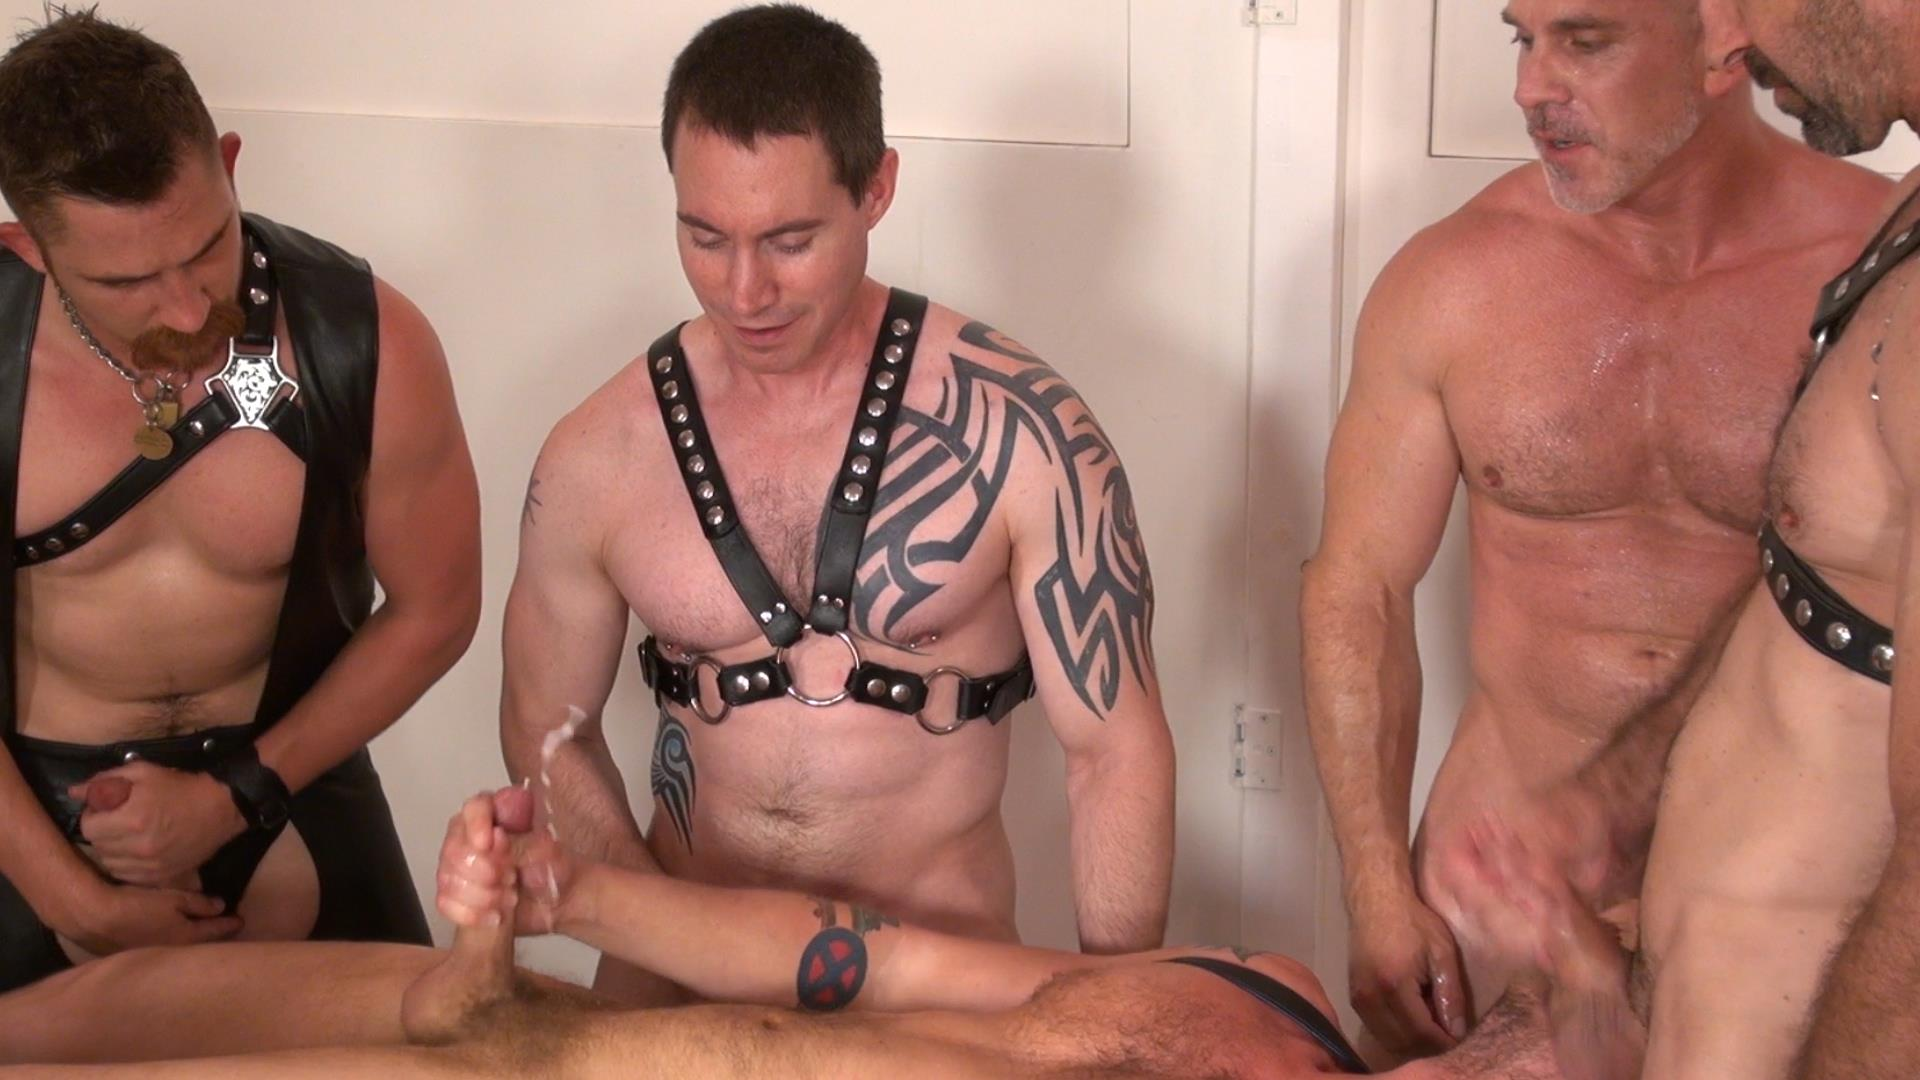 Raw and Rough Jason Mitchell Steven Richards Sam Dixon Blue Bailey Dayton OConnor Jose del Toro Bareback Bathhouse Amateur Gay Porn 06 Blue Bailey Getting Fucked Bareback By 5 Guys At A Bathhouse